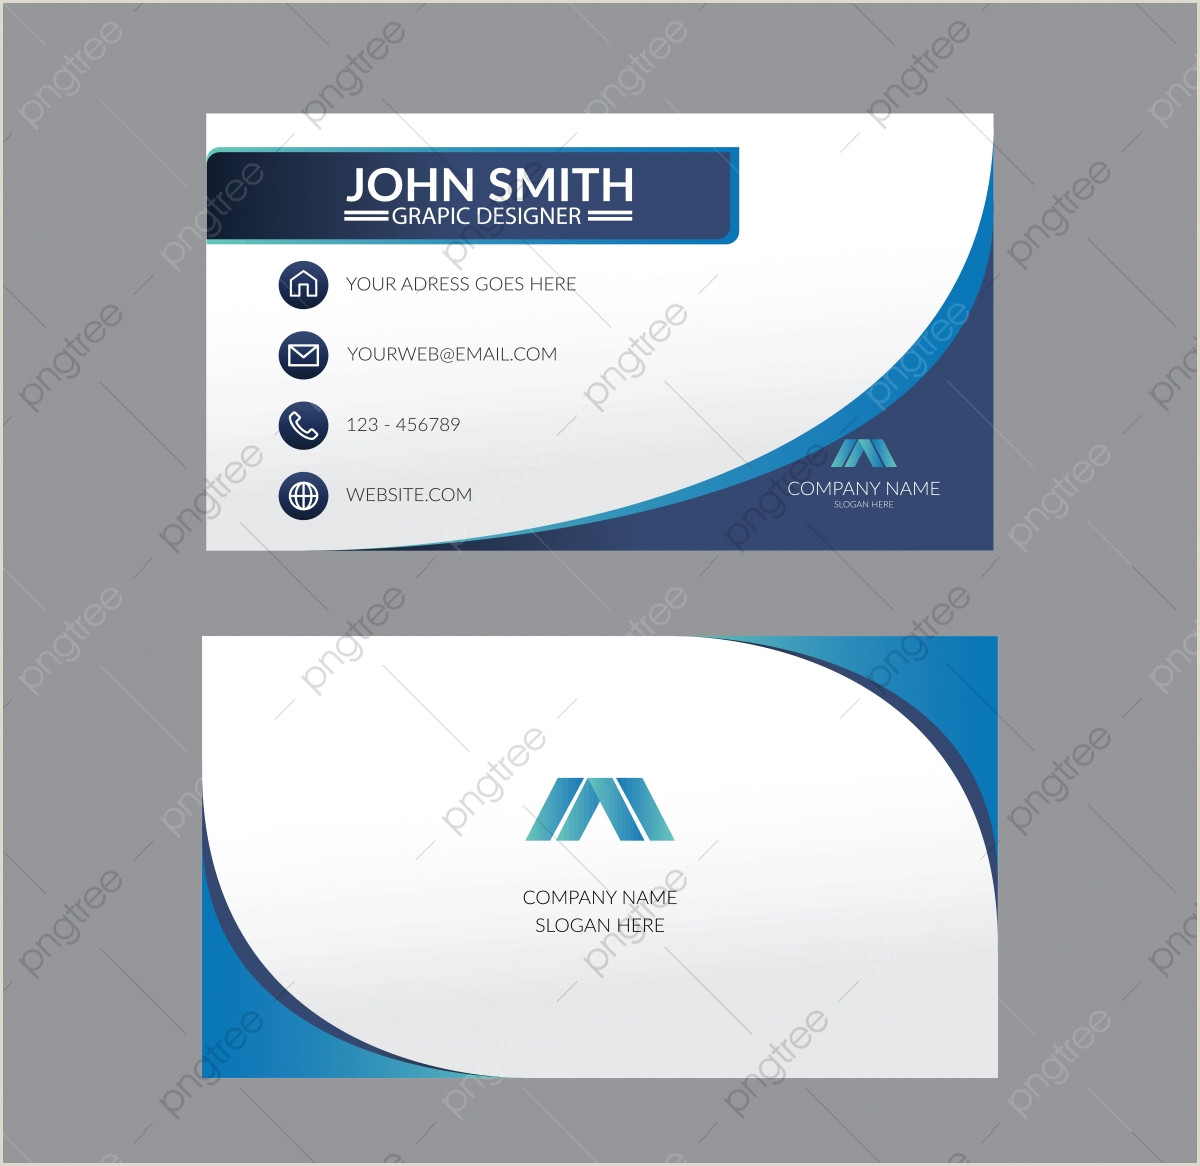 Graphic Designer Business Card Templates Business Card Design Png